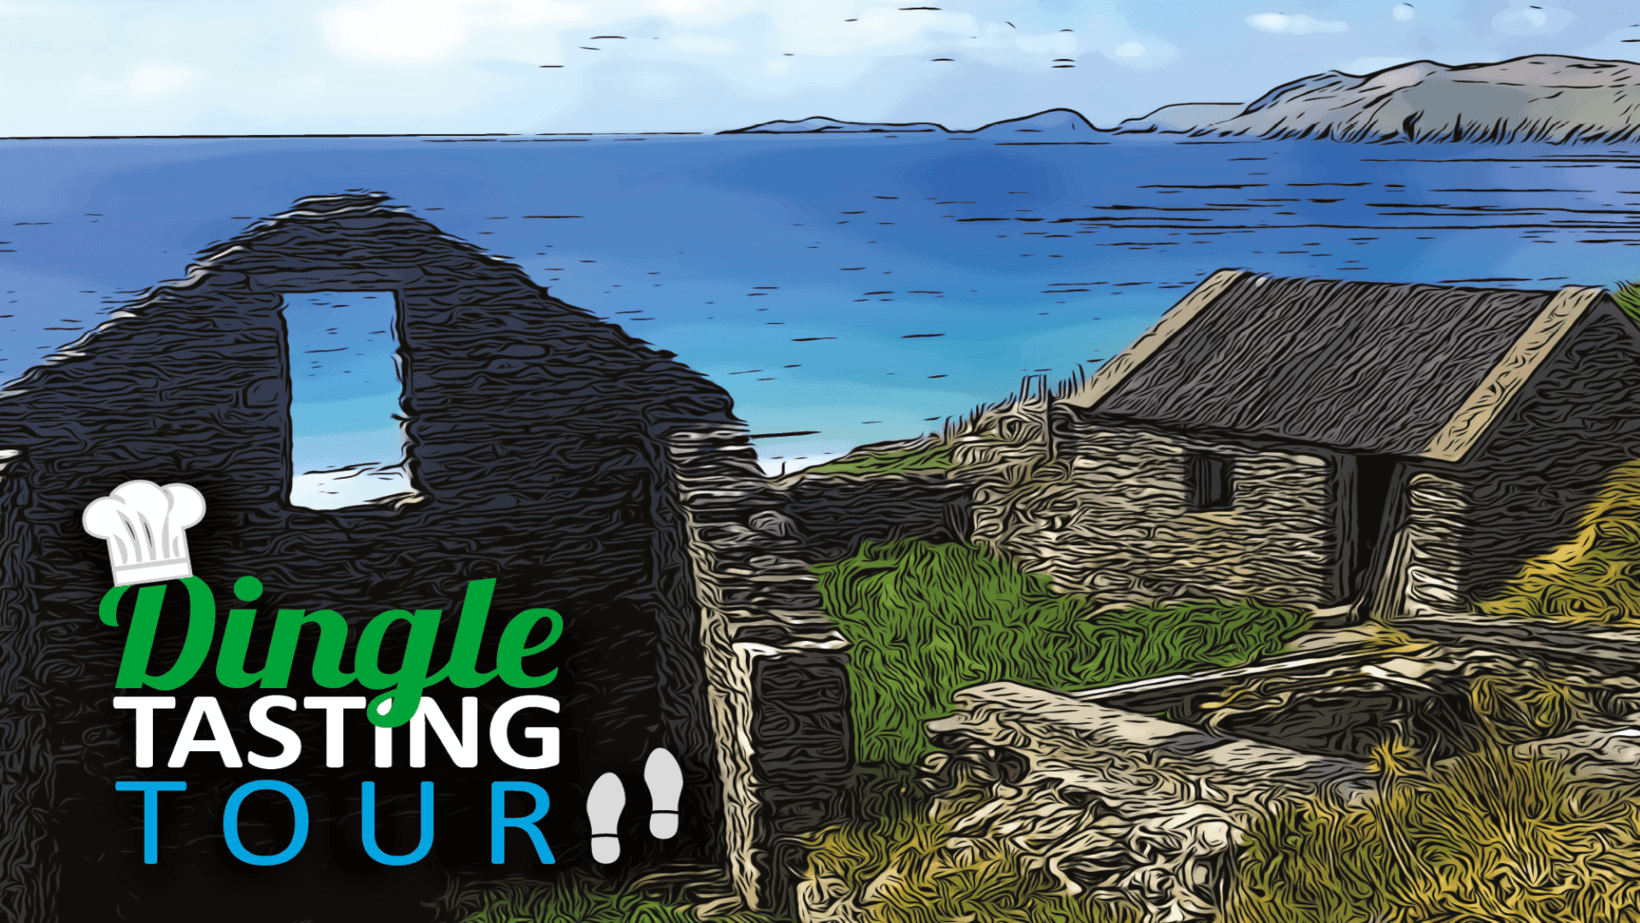 The Dingle Tasting Tour - Three glorious hours of food, drink, history and an insiders view of Dingle you will never forget.